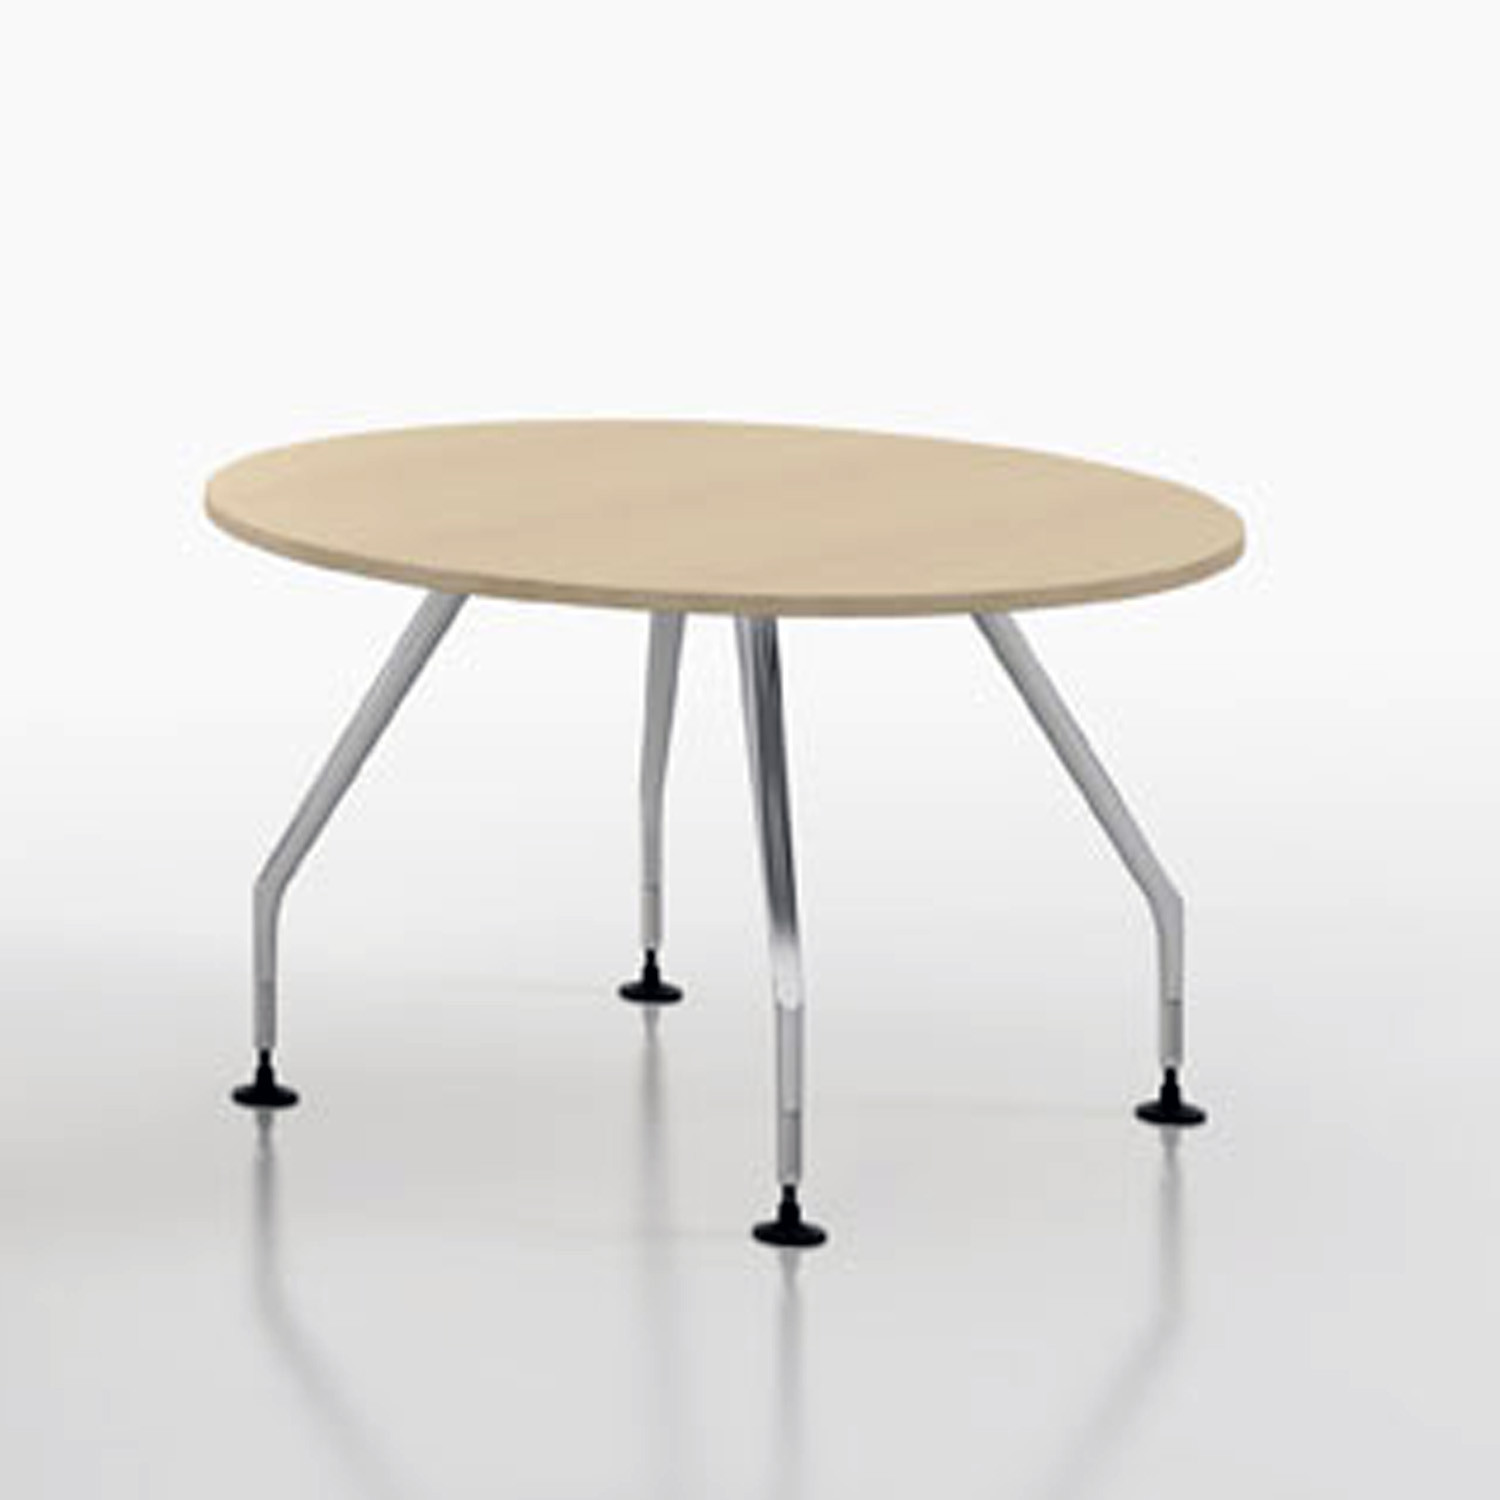 Ad Hoc Solitaires Meeting Table